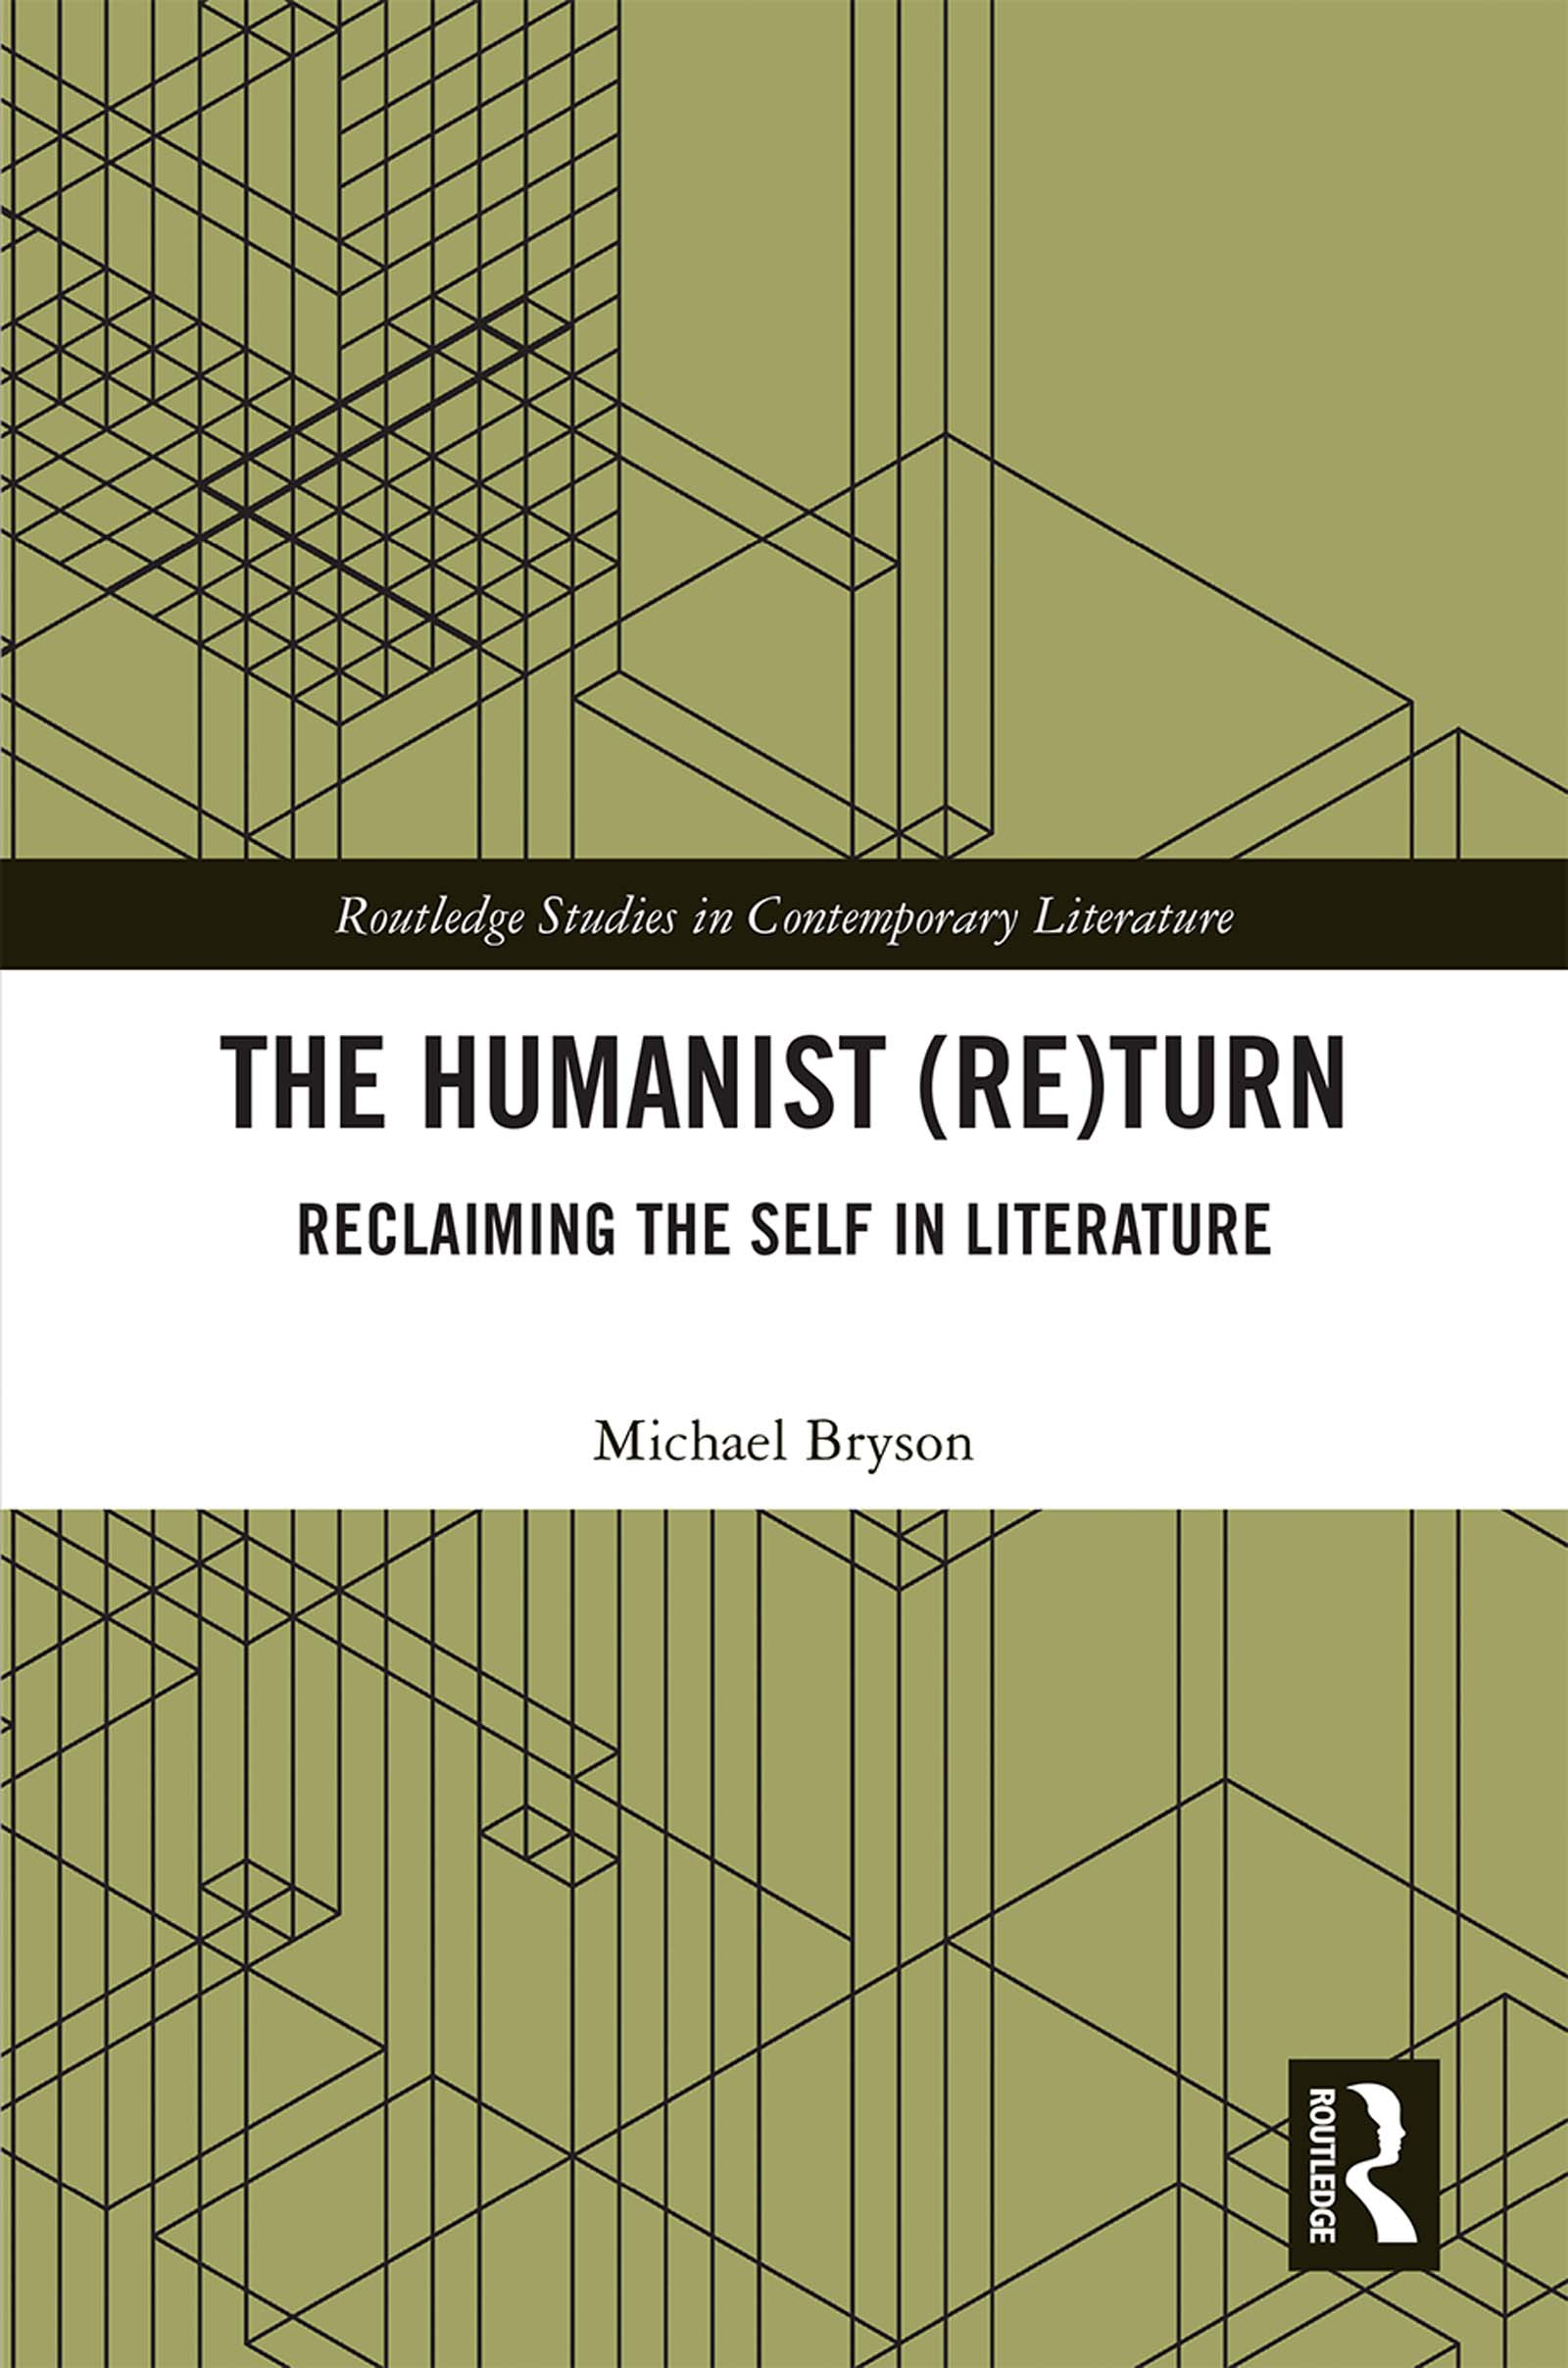 The Humanist (Re)Turn: Reclaiming the Self in Literature book cover